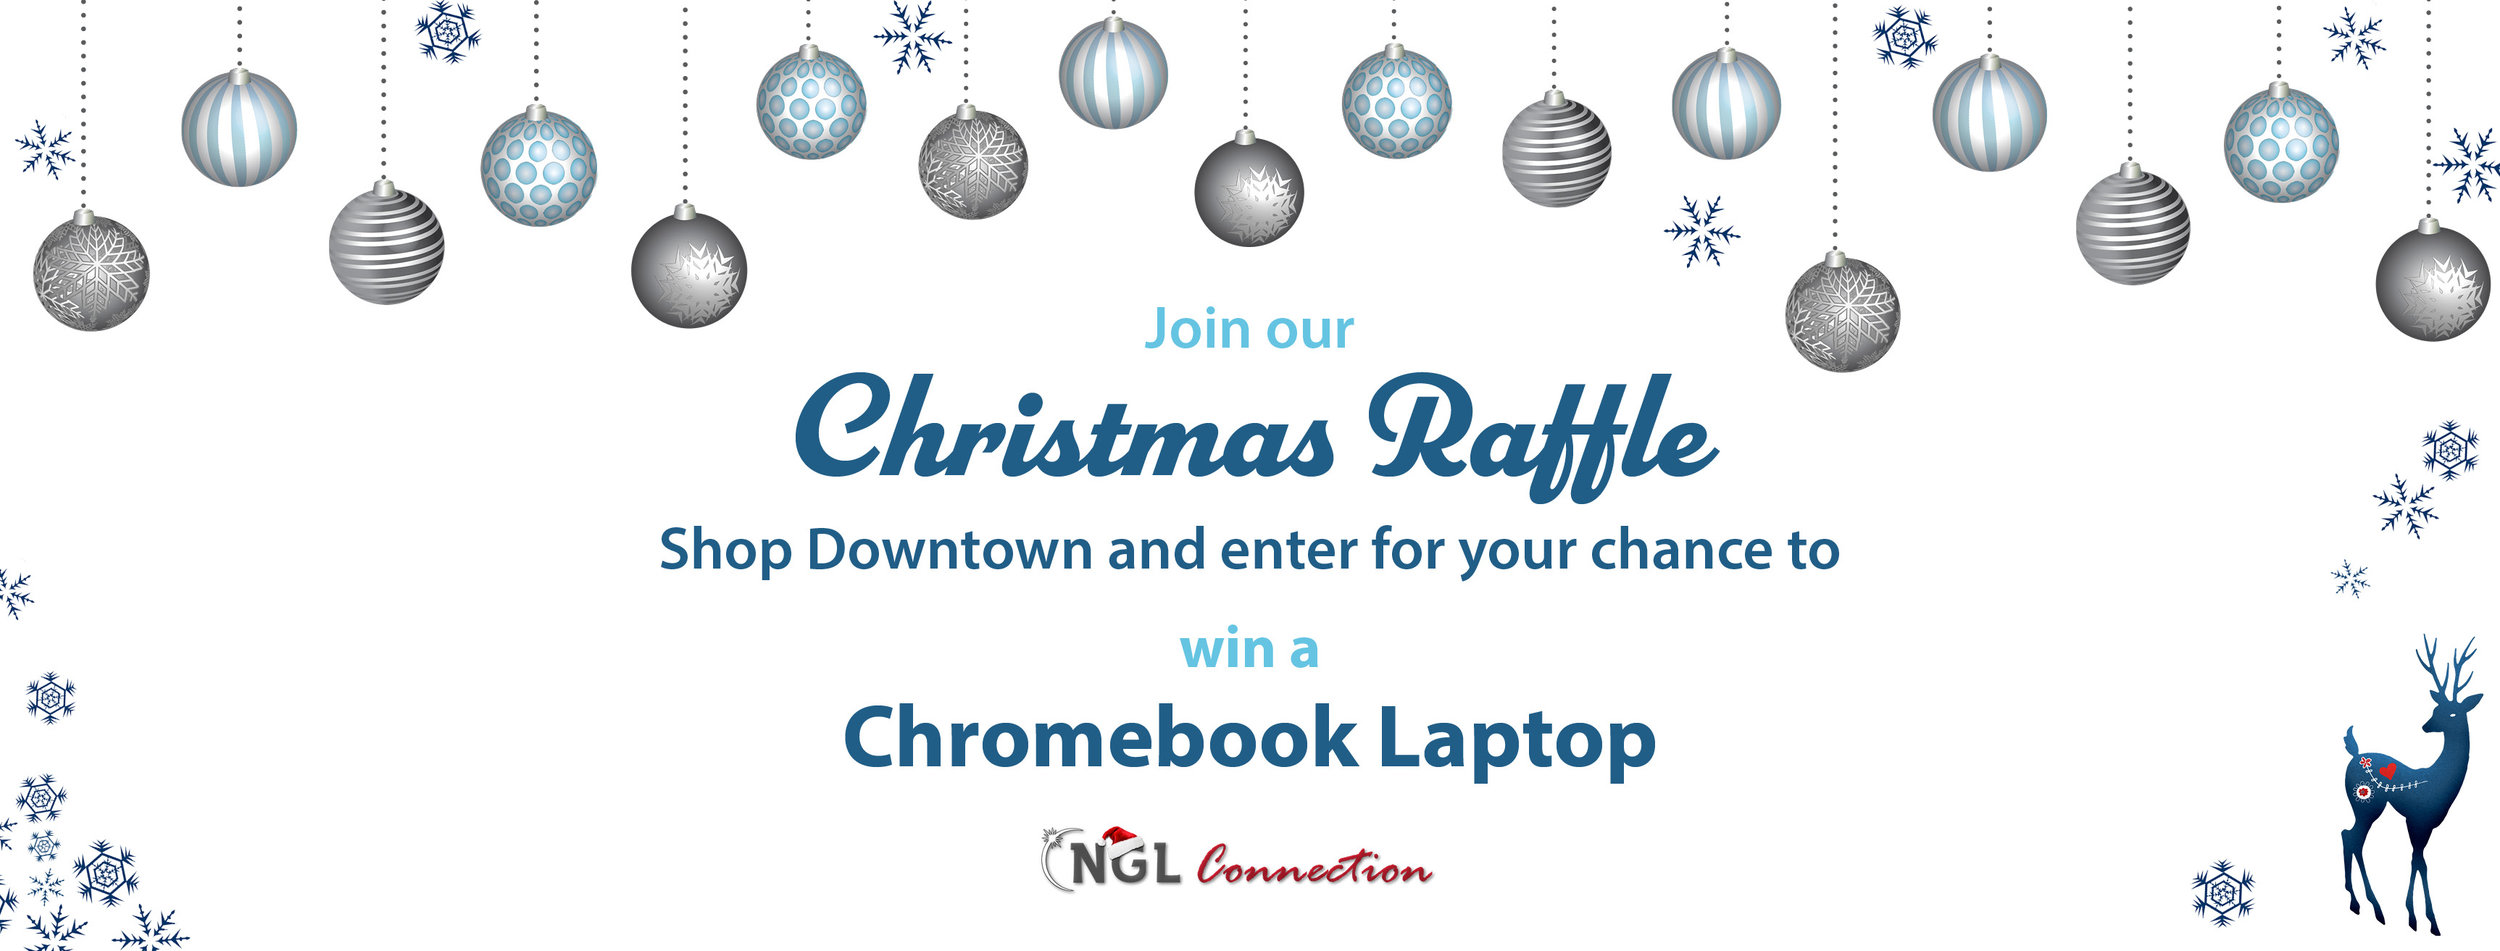 December 2018 - Chromebook Raffle FB Cover.jpg